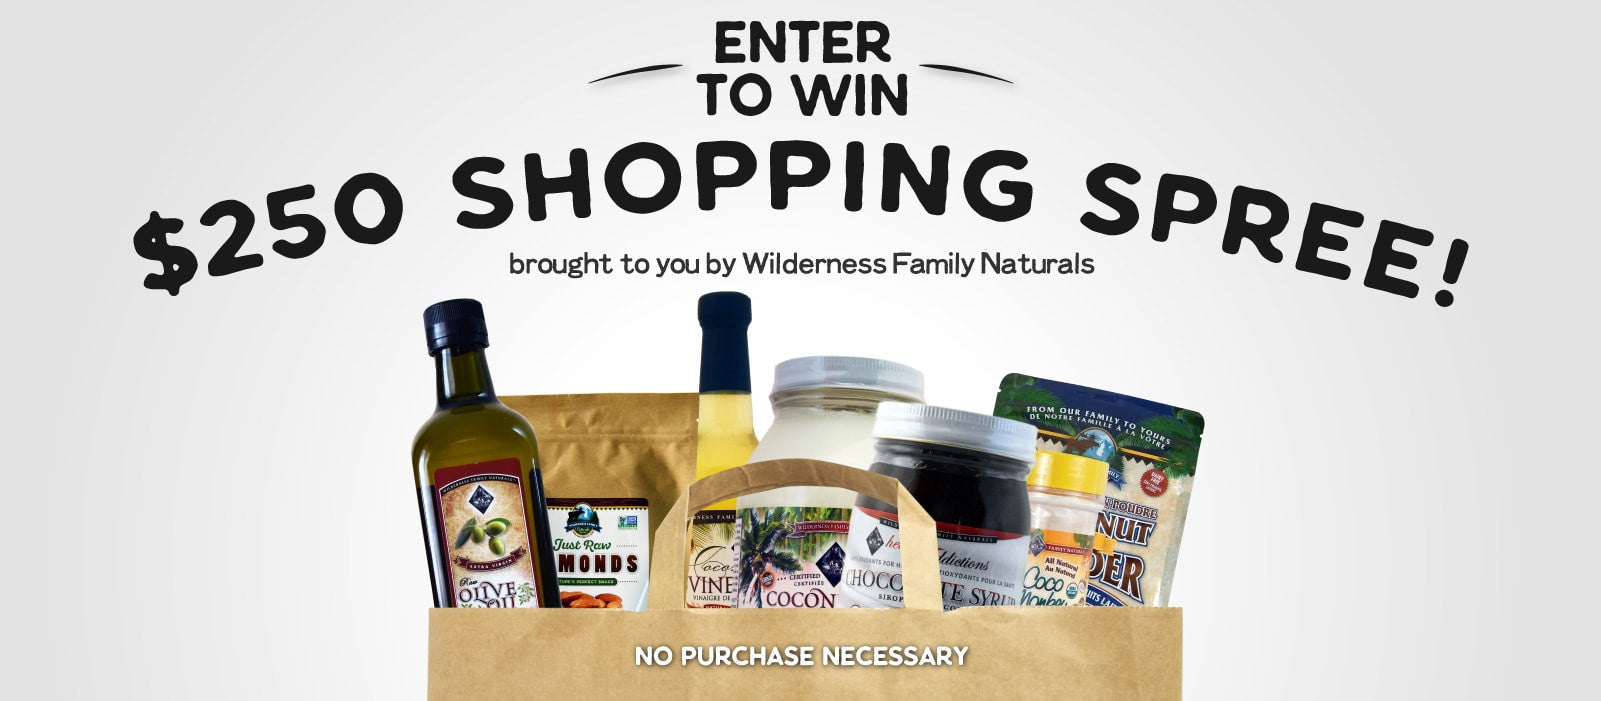 Win A $250 Shopping Spree! - Wilderness Family Naturals